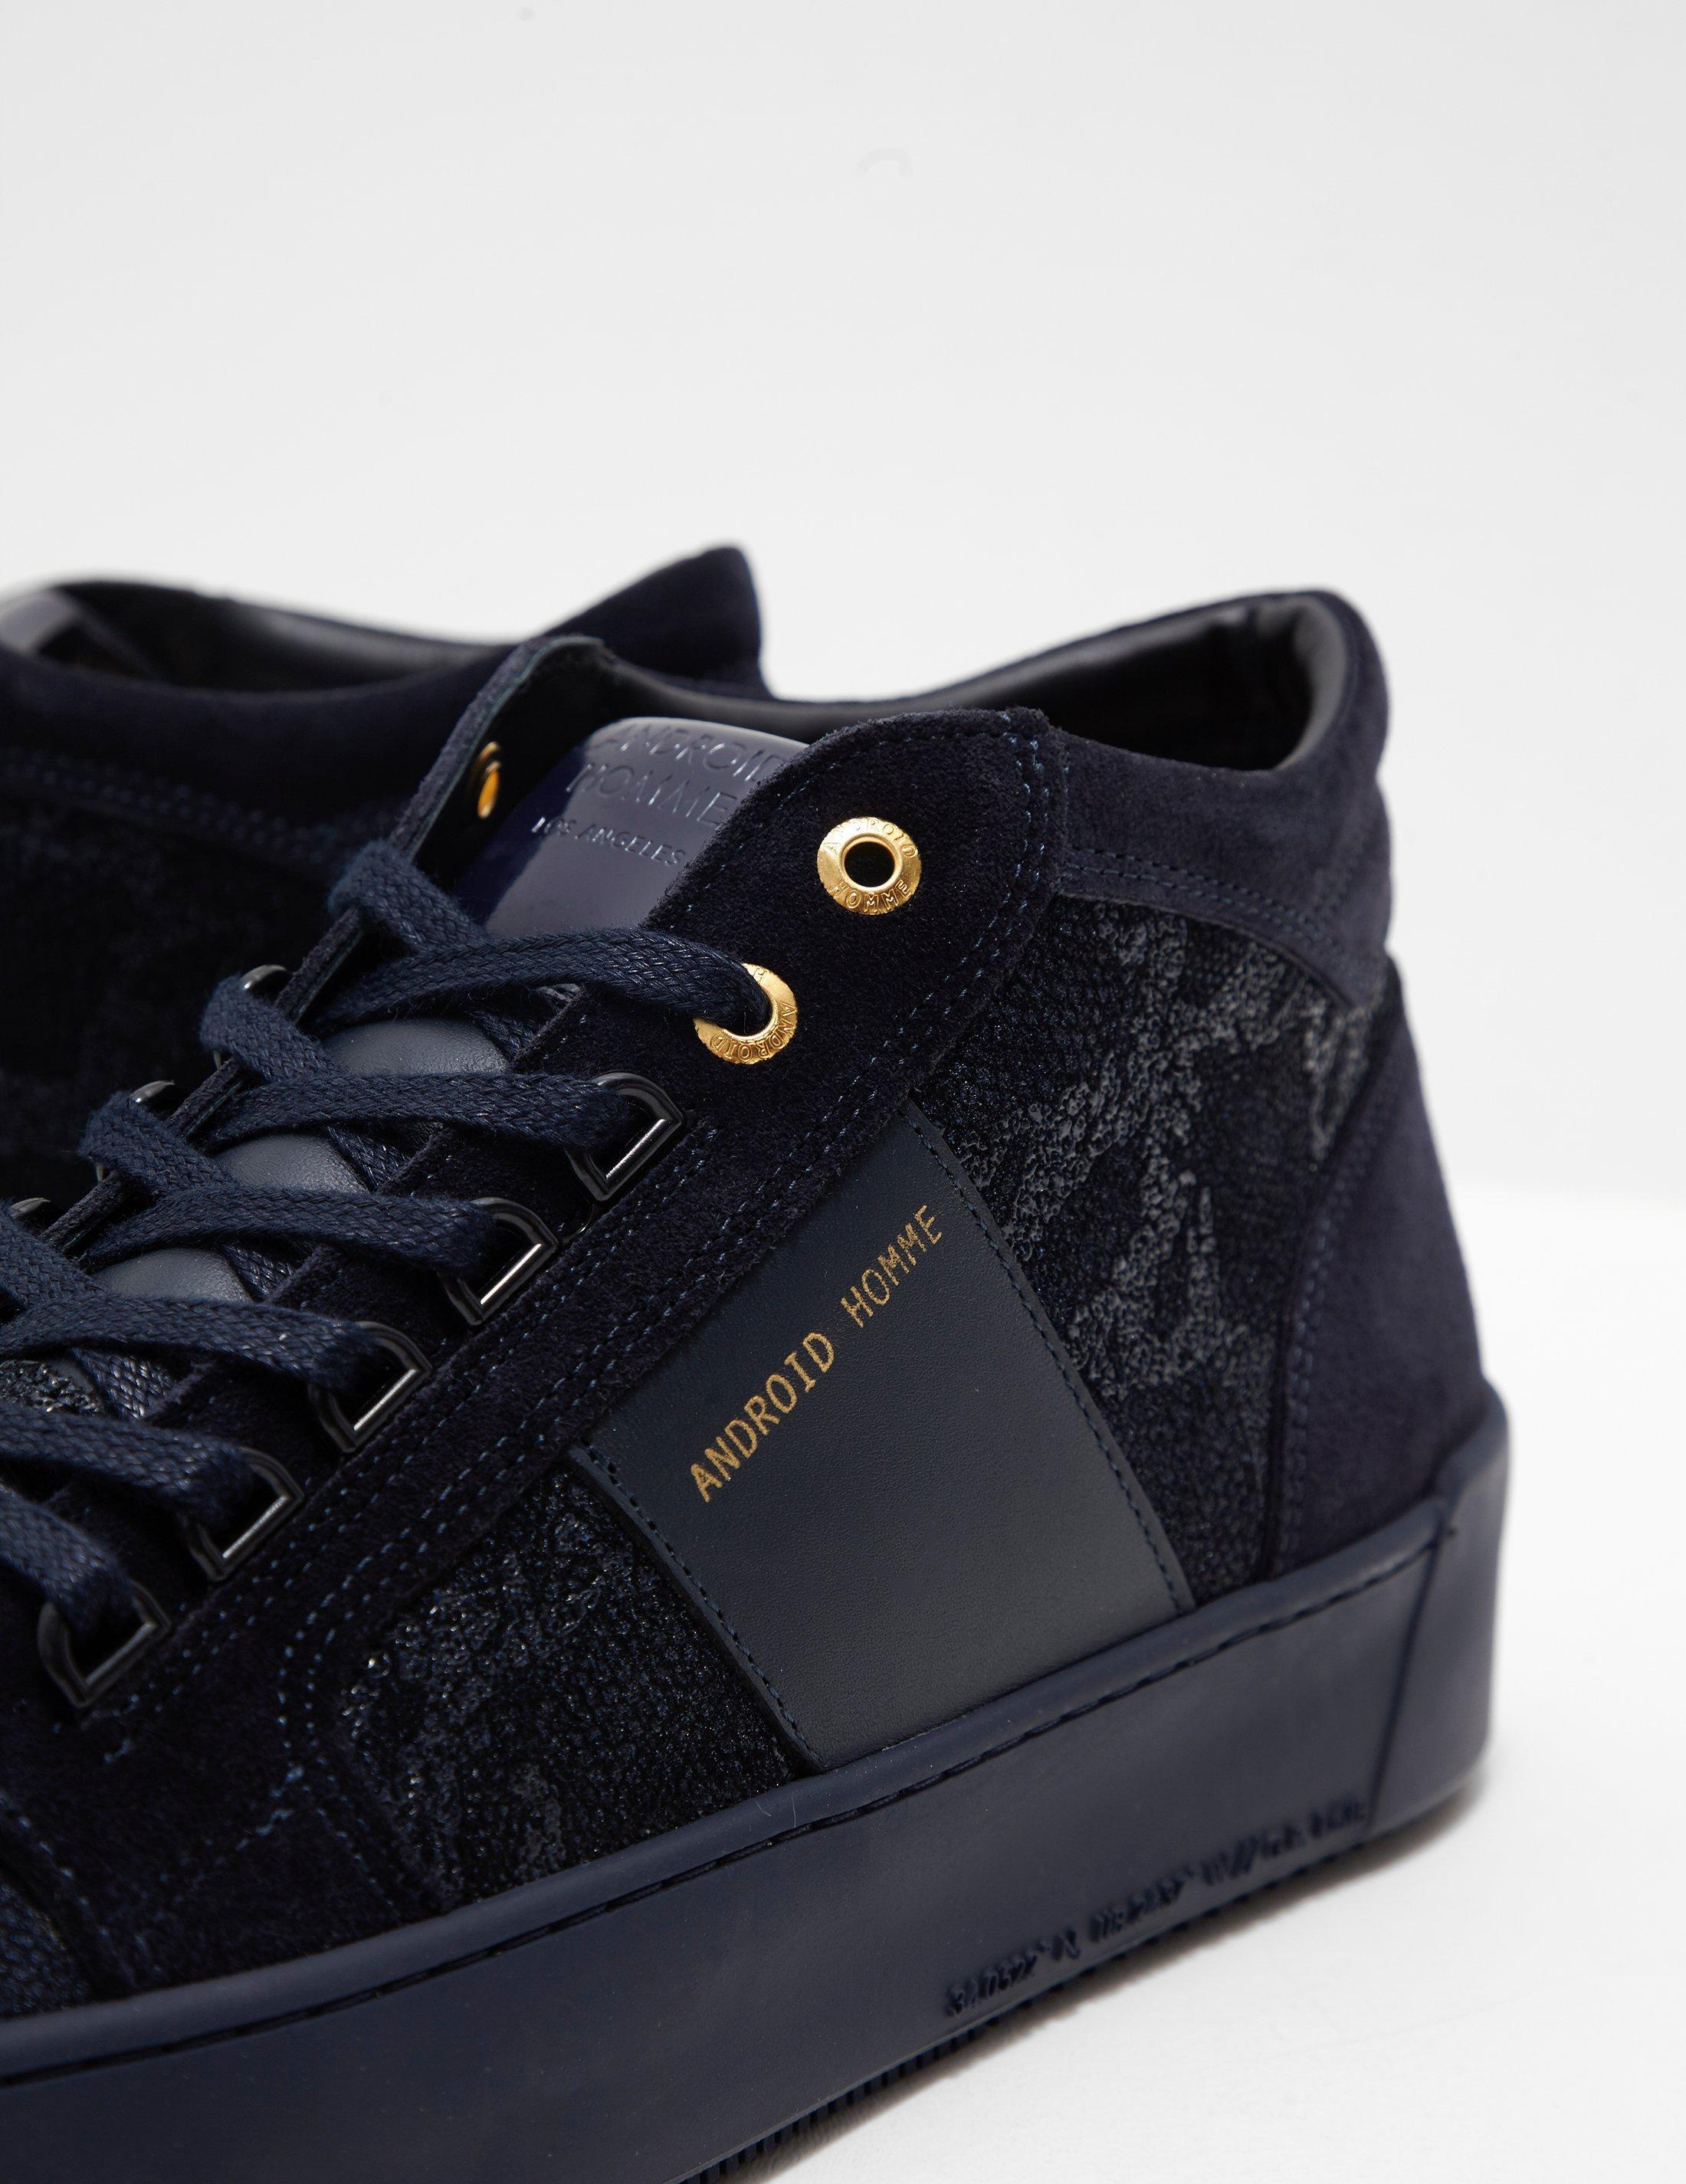 067f5018231 Lyst android homme mens propulsion python navy blue in blue for men jpg  2200x2850 Mens python